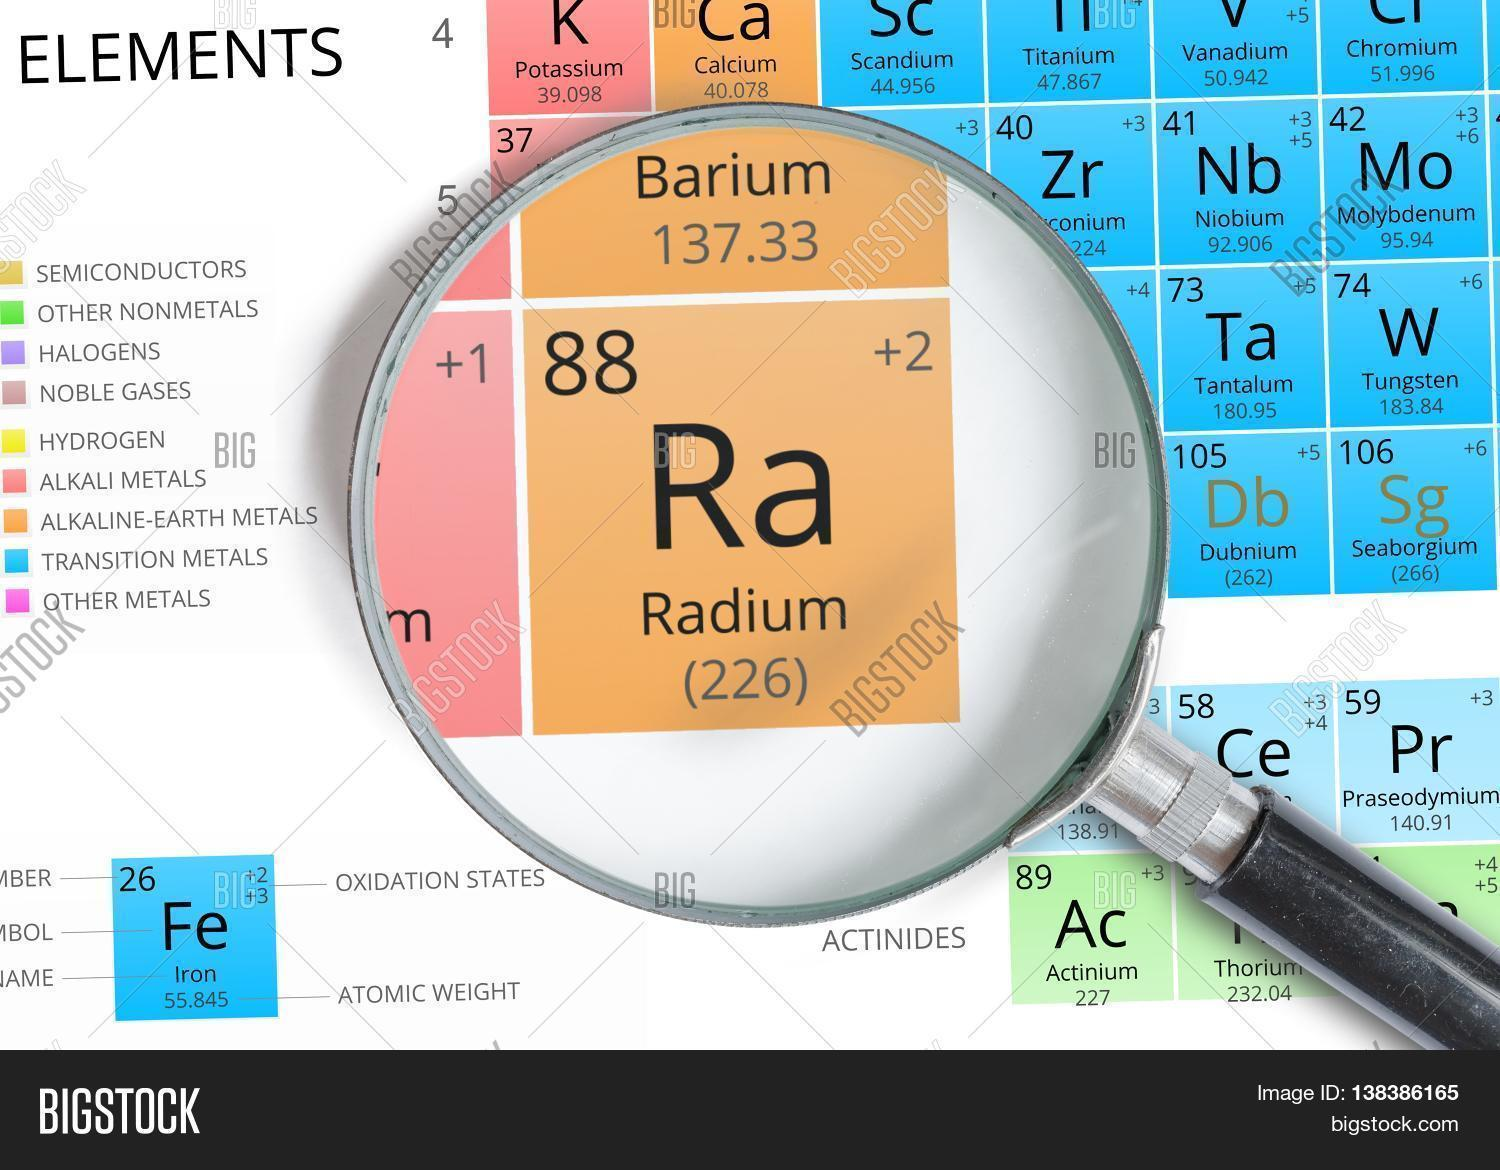 Radium symbol ra image photo free trial bigstock radium symbol ra element of the periodic table zoomed with ma urtaz Gallery